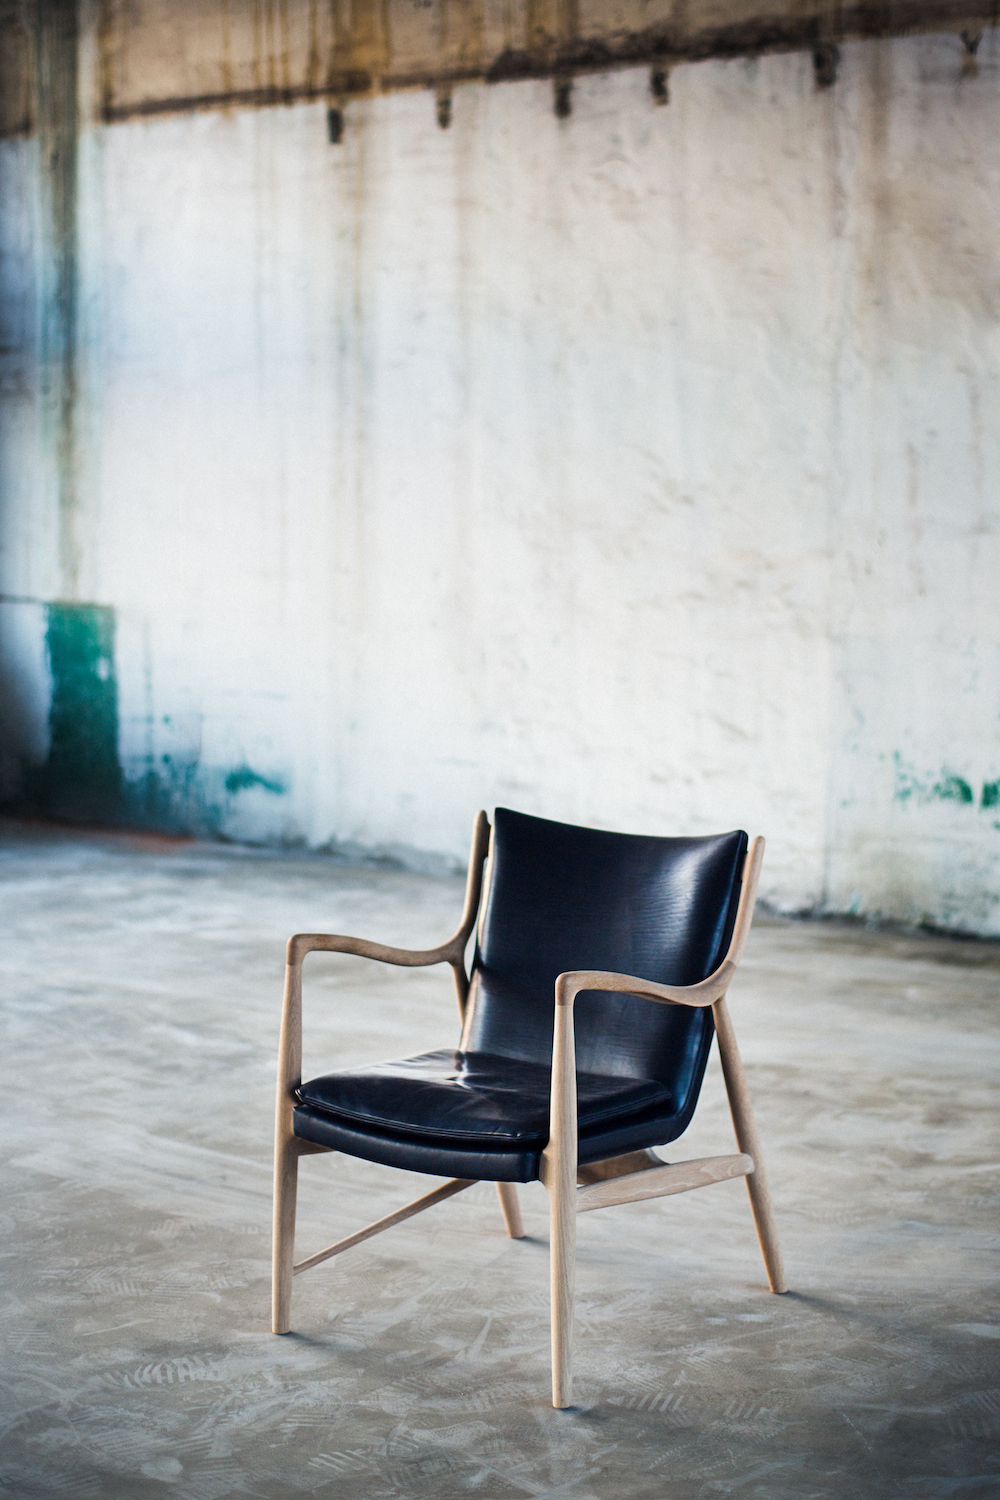 finn juhl x guidi chair collaboration model 108 photography by alexey blagutin | S/TUDIO